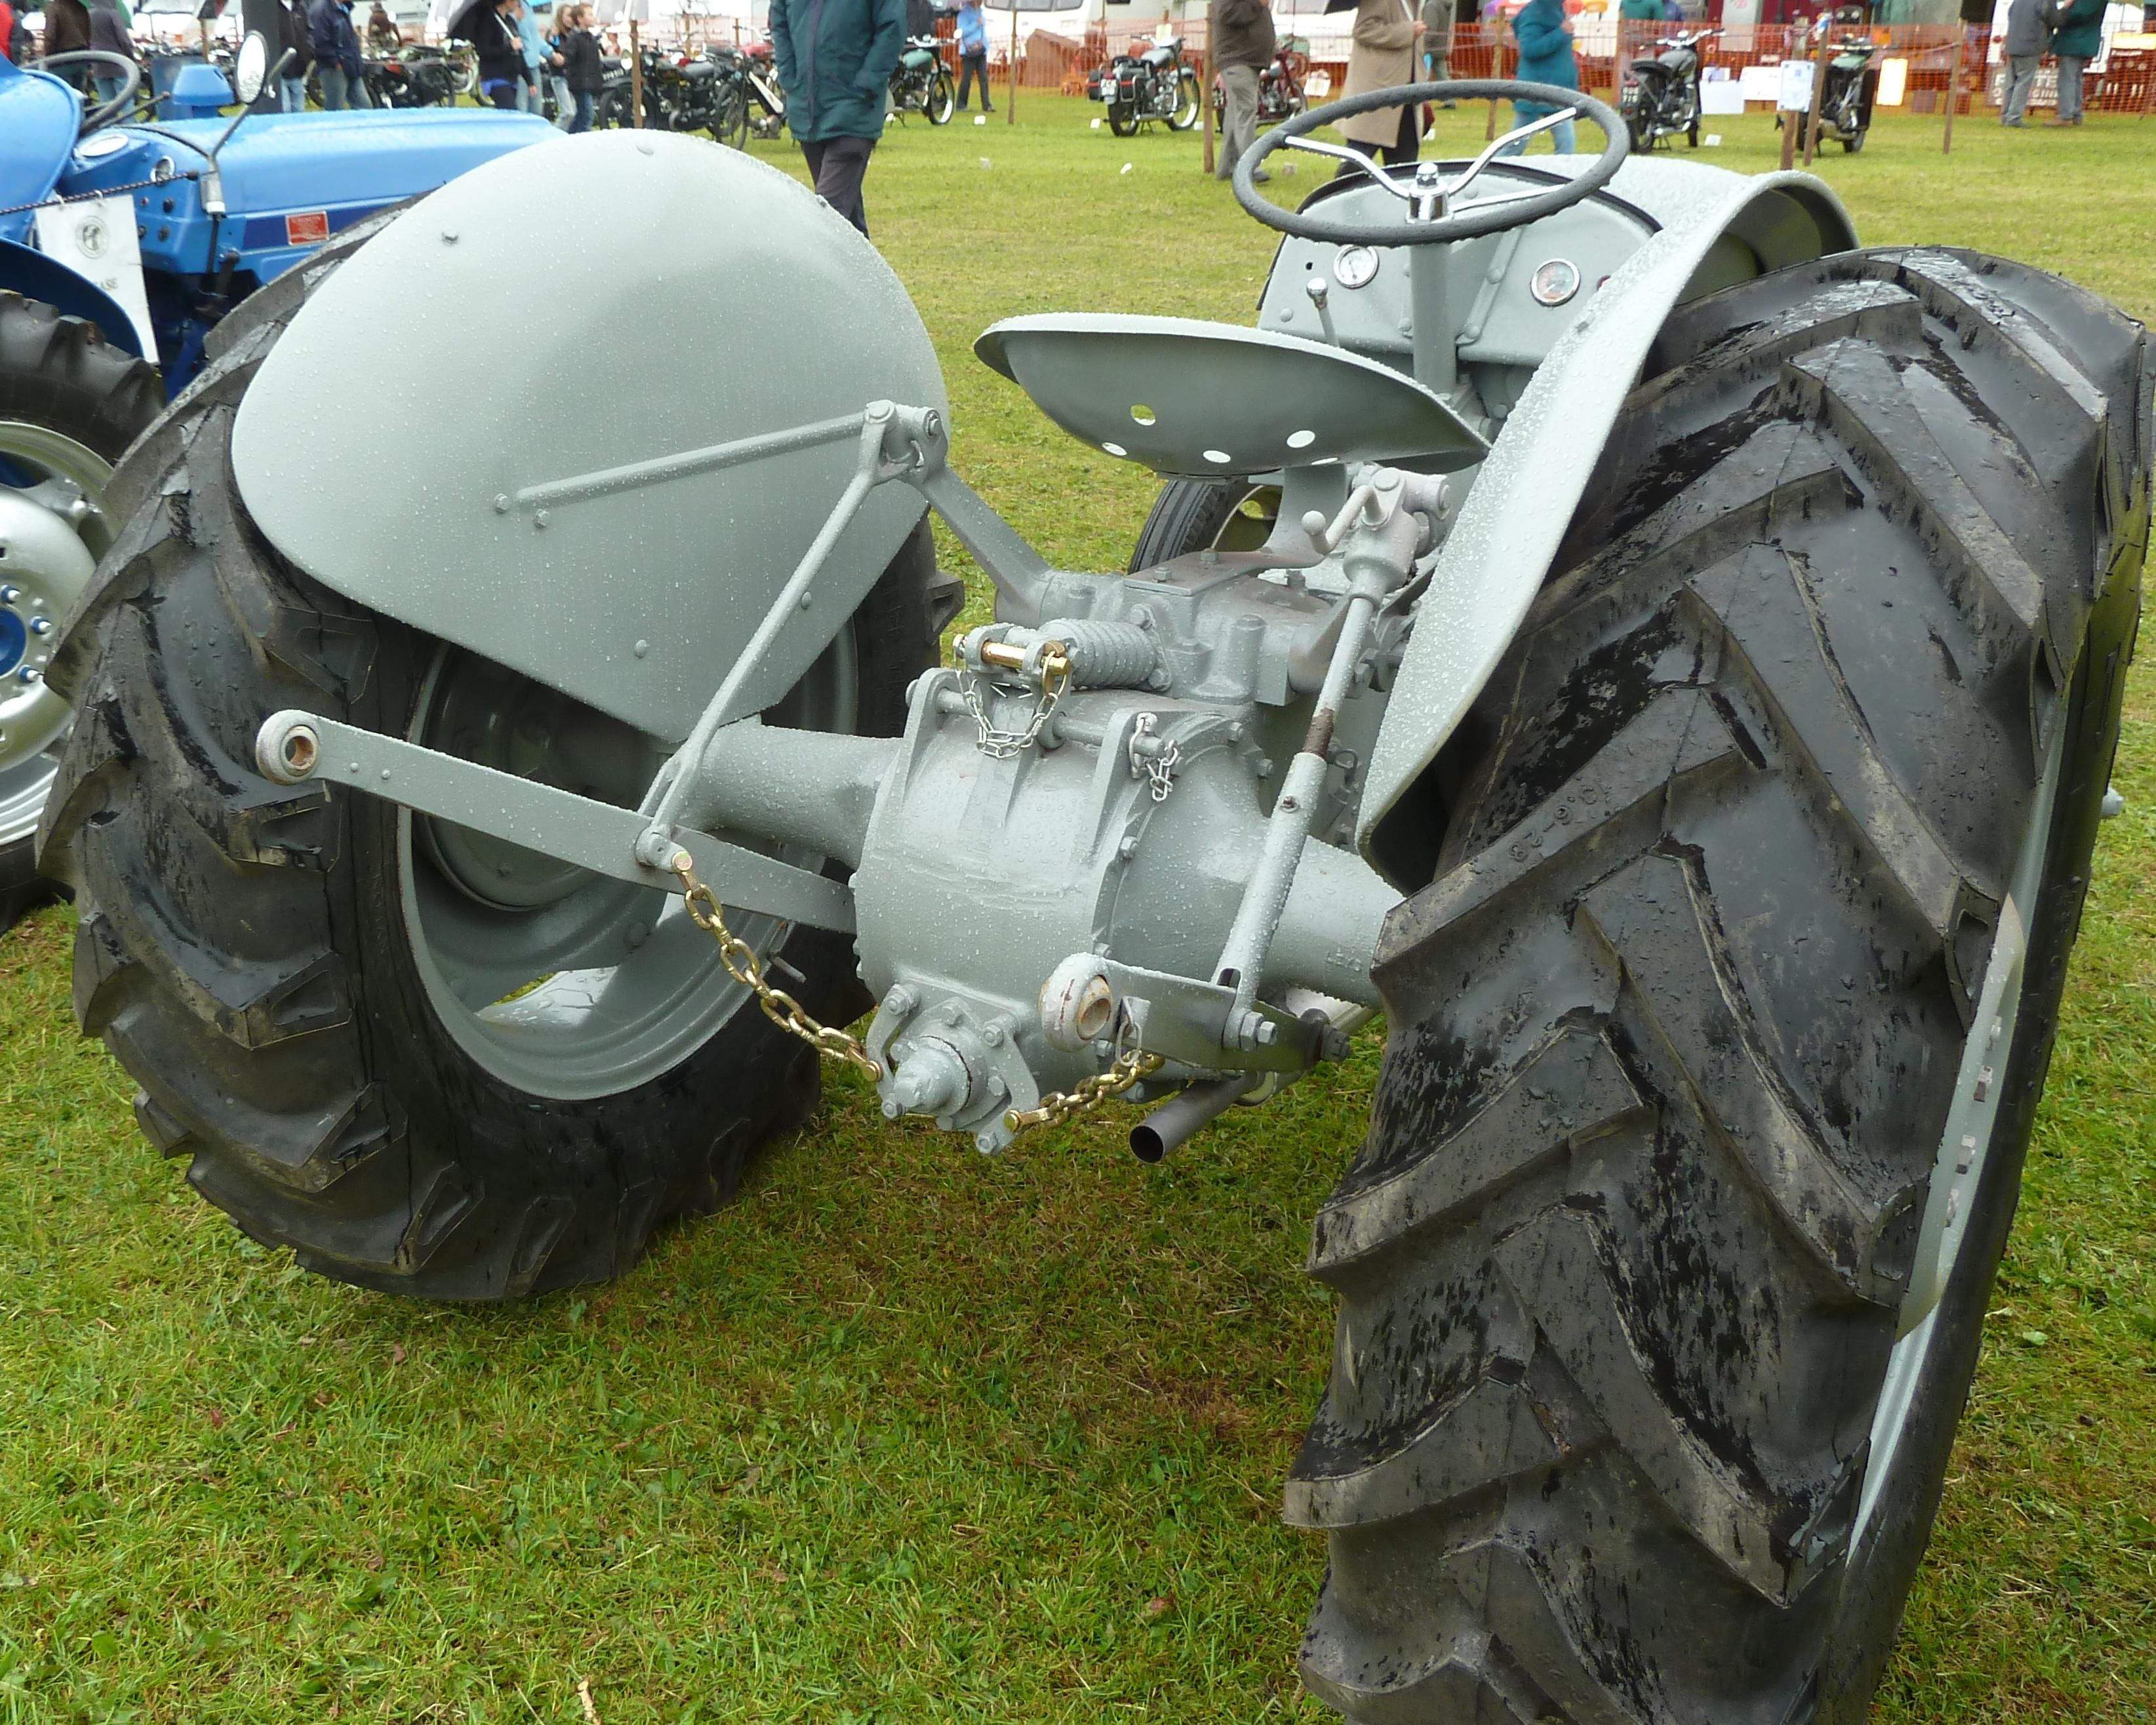 ferguson 30 tractor wiring with File Three Point Linkage  Ferguson Te 20  Abergavenny on Viewtopic besides File Three Point linkage  Ferguson TE 20  Abergavenny moreover Viewit moreover HB455 also Ford Tractor Power Steering.